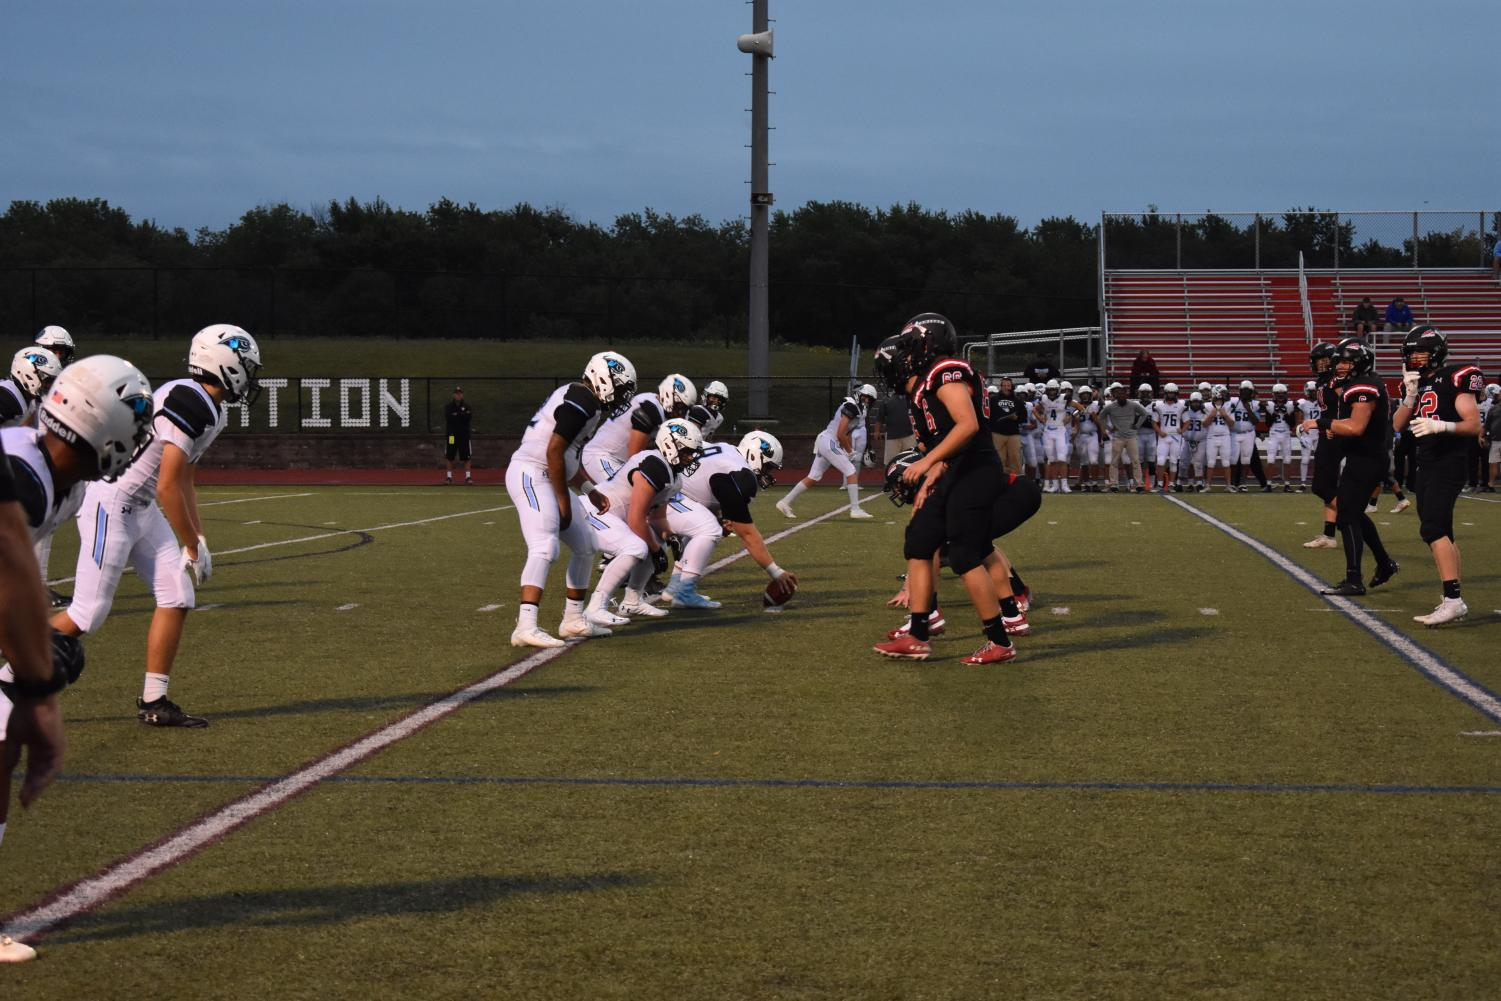 The Lancers' defense lines up just before the Owls hike the ball.